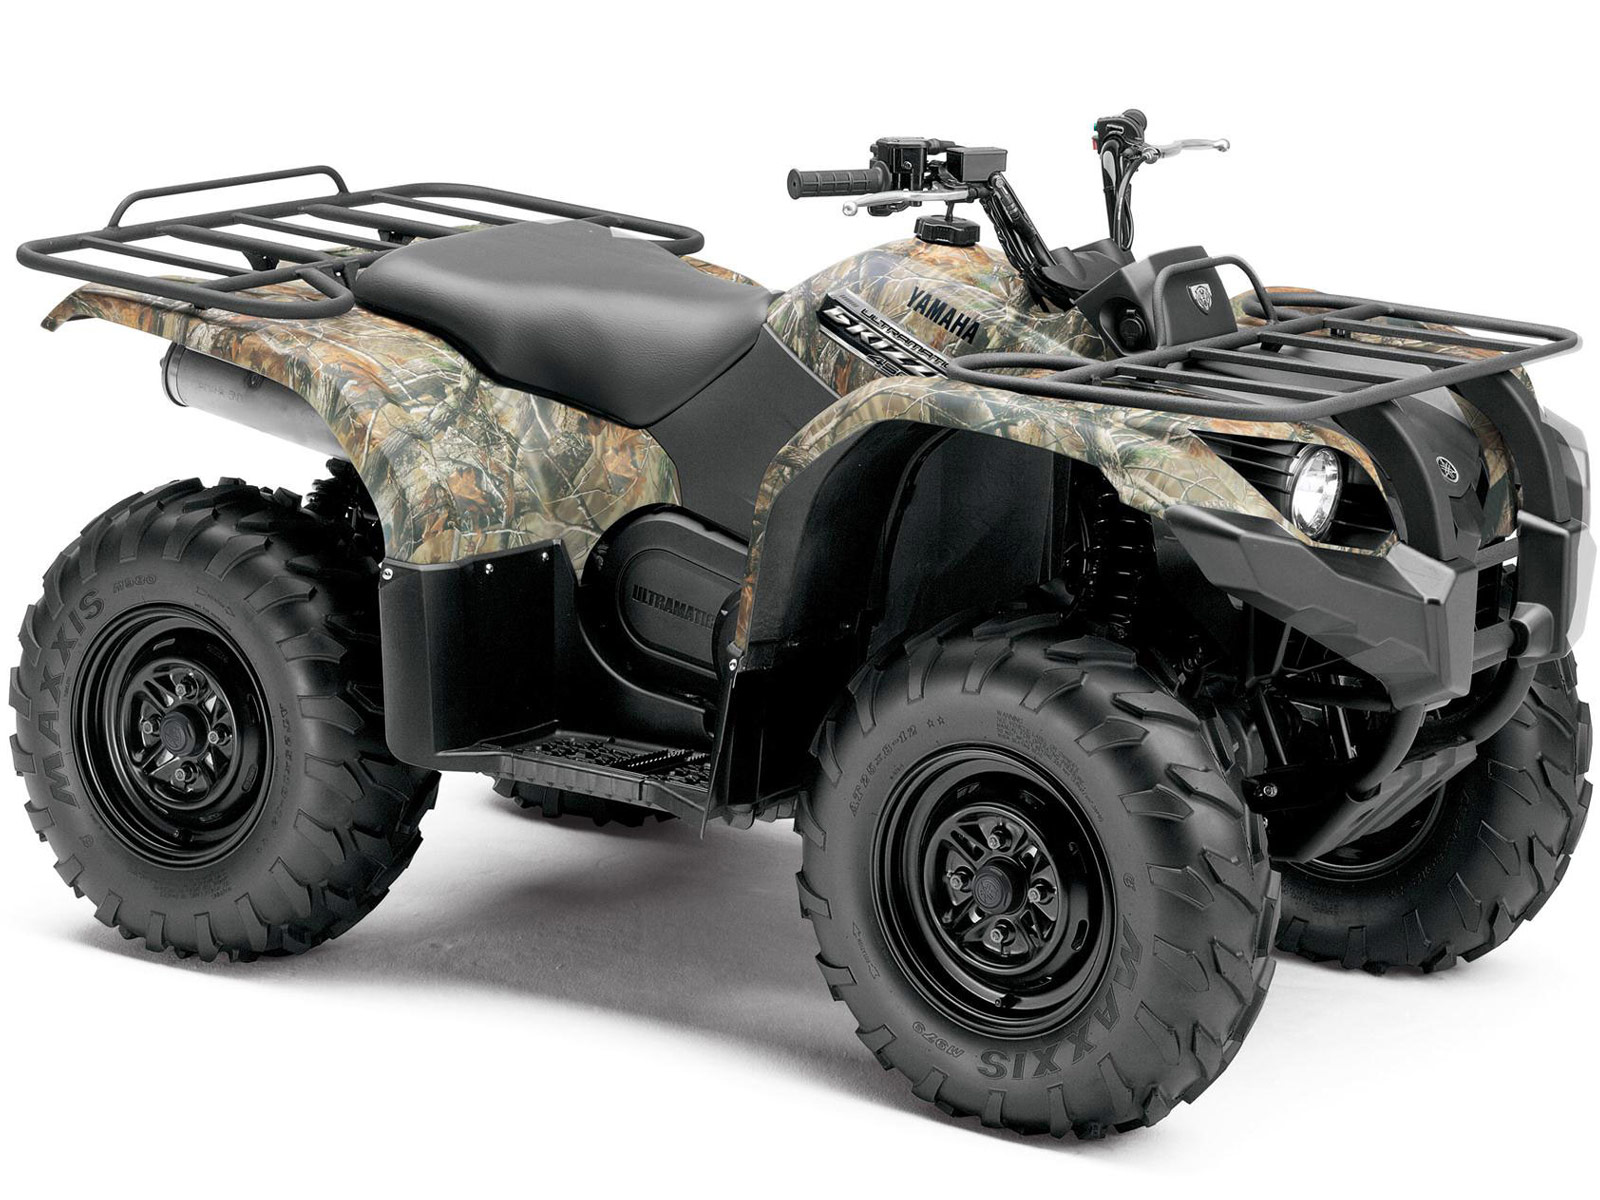 2013 yamaha grizzly 450 auto 4x4 auto insurance information for Yamaha grizzly atv